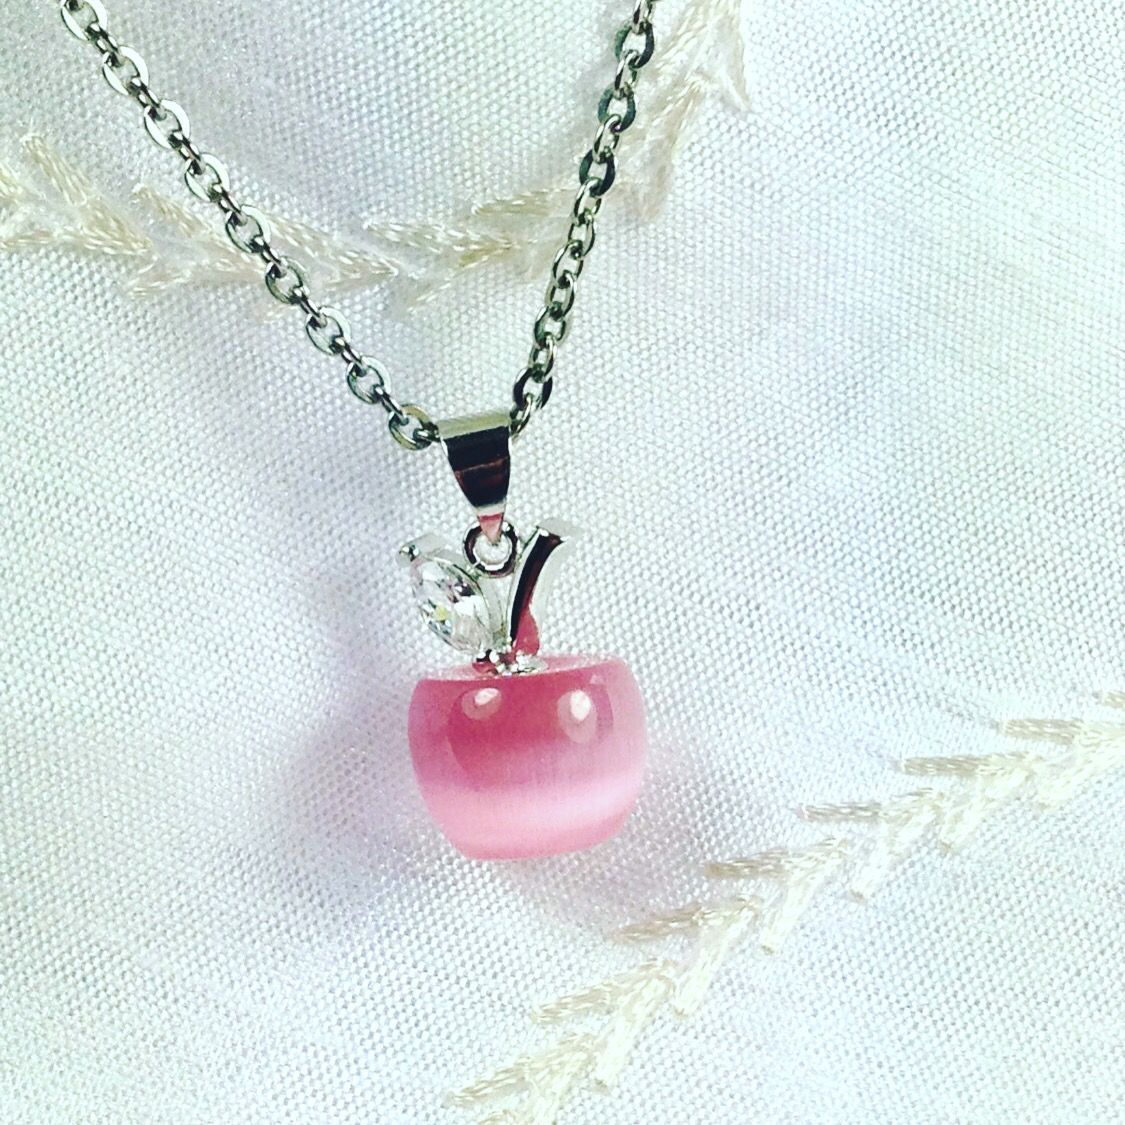 Cat&#39;s Eye #Apple #Necklace w/ #Crystal Leaf #Handmade #NorthCoastCottage #Jewelry  https:// buff.ly/2vfinEZ  &nbsp;   #pink #MothersDay #shopping #gift<br>http://pic.twitter.com/39UENY0HlT